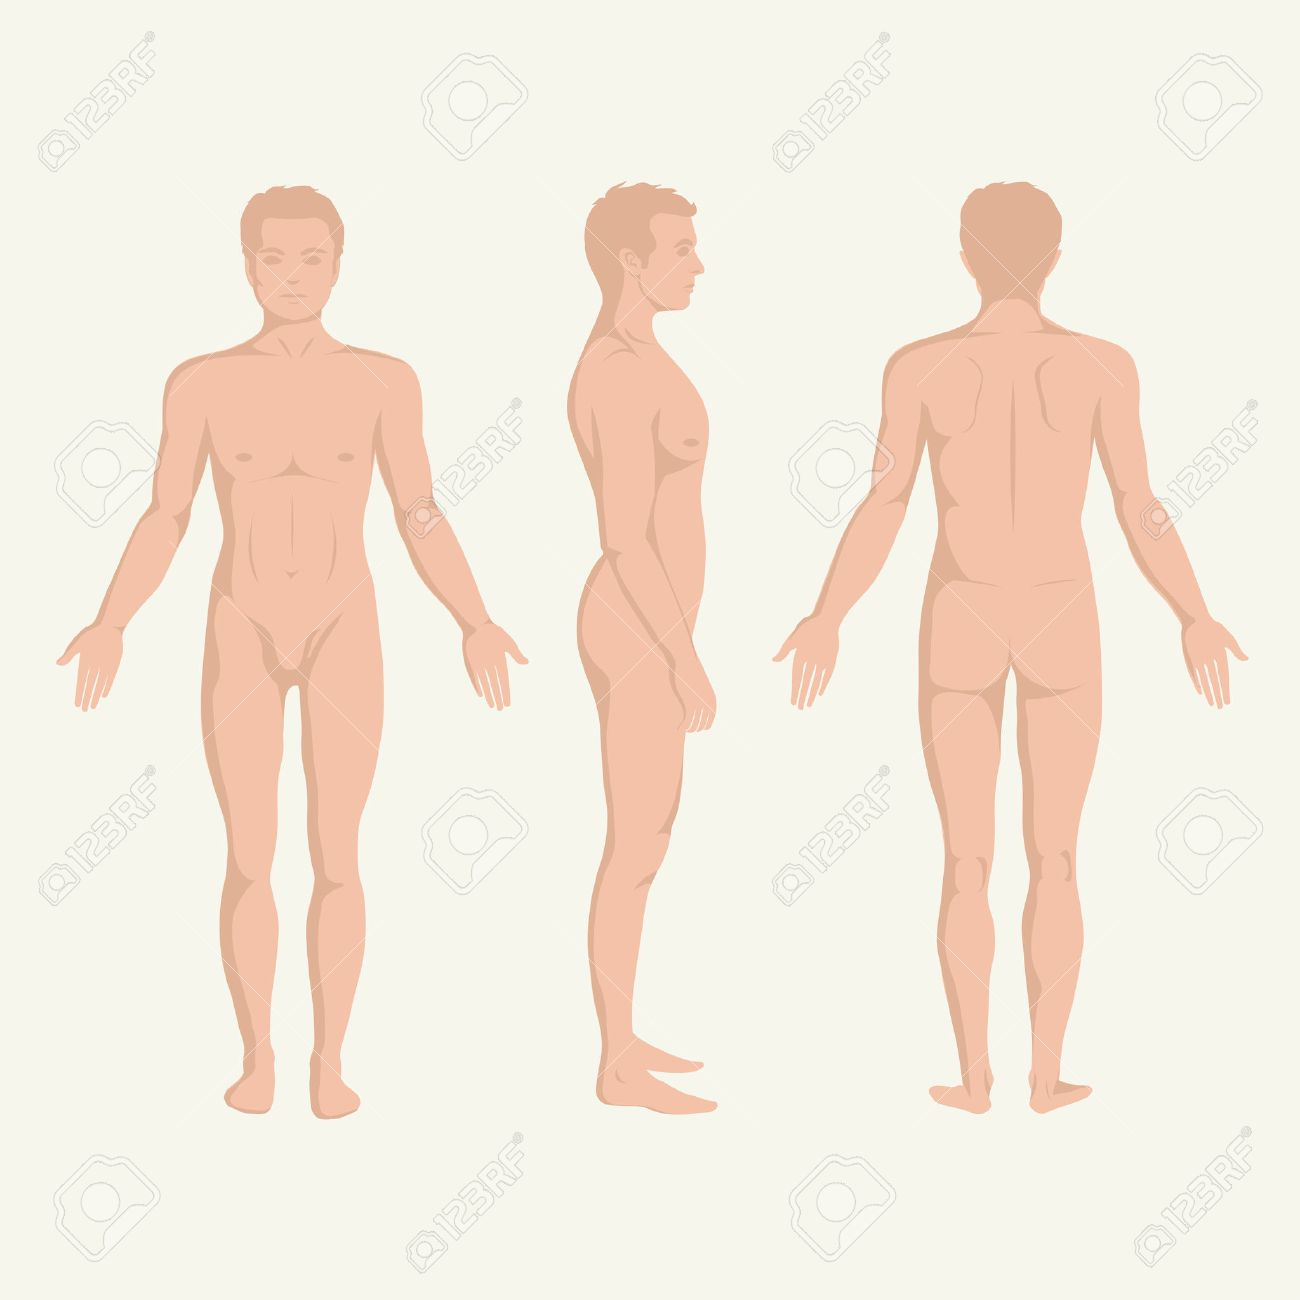 Man Body Anatomy, Front, Back And Side Standing Human Pose Royalty ...